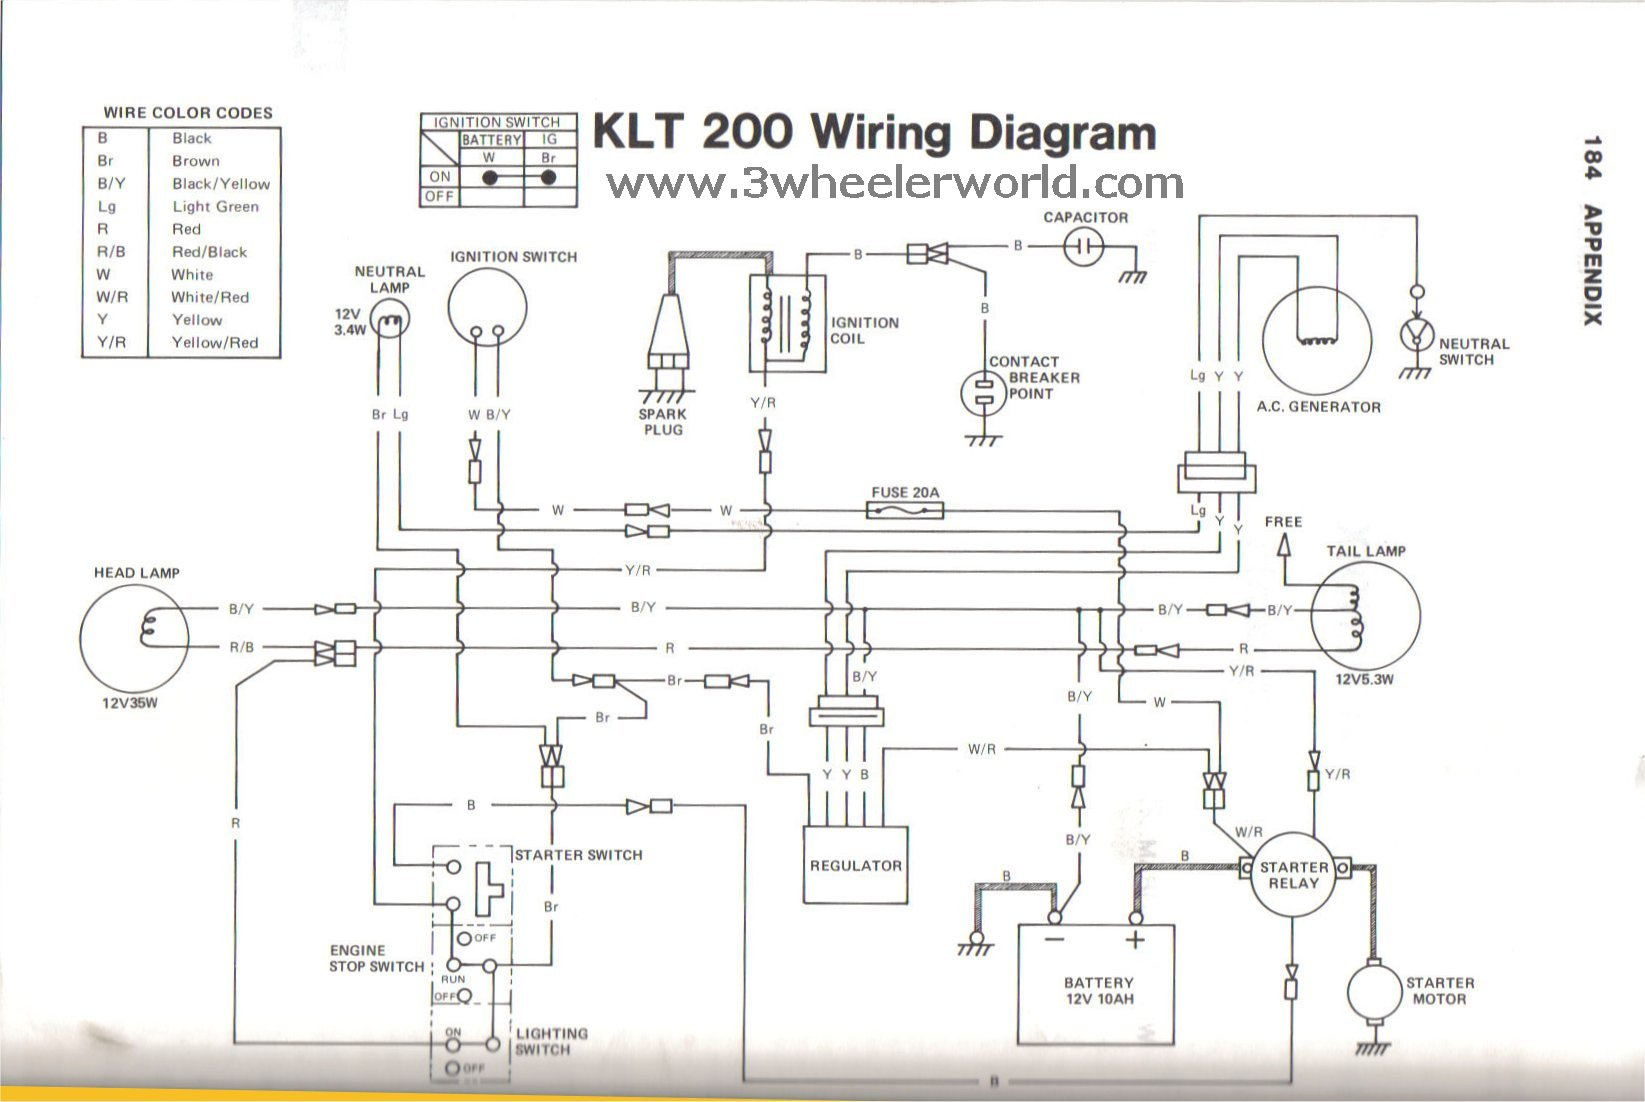 kawasaki 250 mojave 4 wheeler wiring diagram house wiring diagram rh  maxturner co Kawasaki Prairie 360 Parts Diagram Kawasaki Prairie 360  Carburetor Diagram